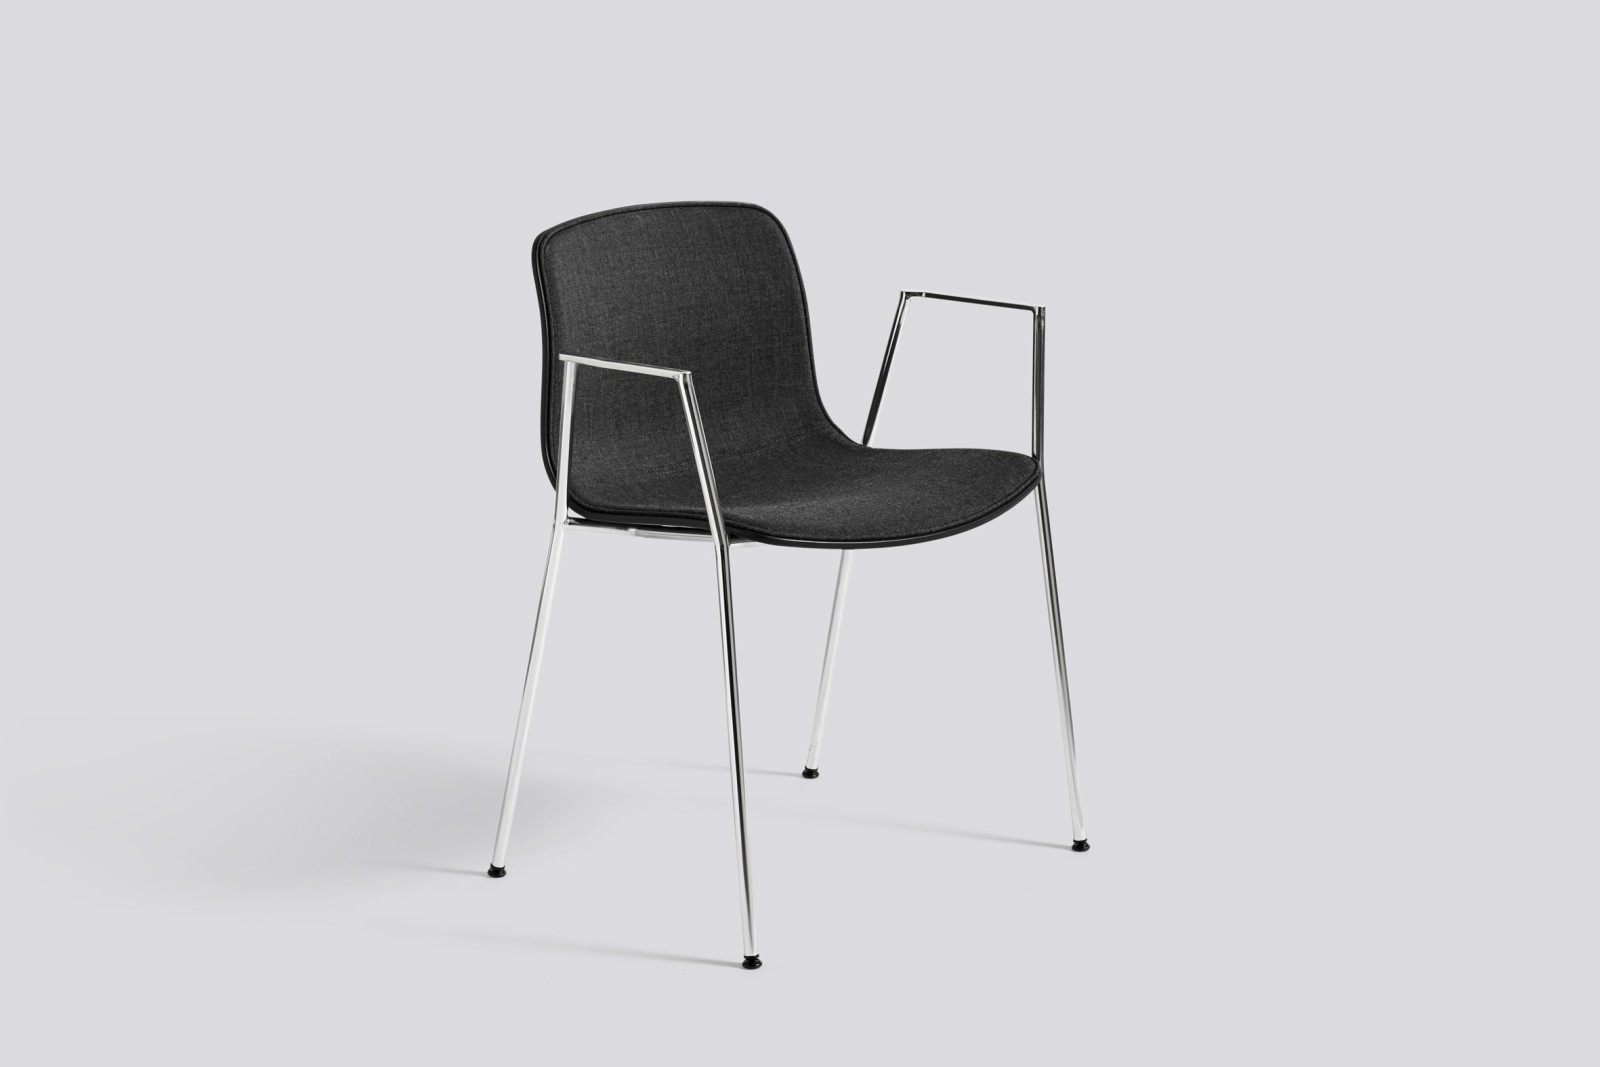 About A Chair AAC18 with front upholstery Surface by Hay 120, Black, White Powder Coated Steel